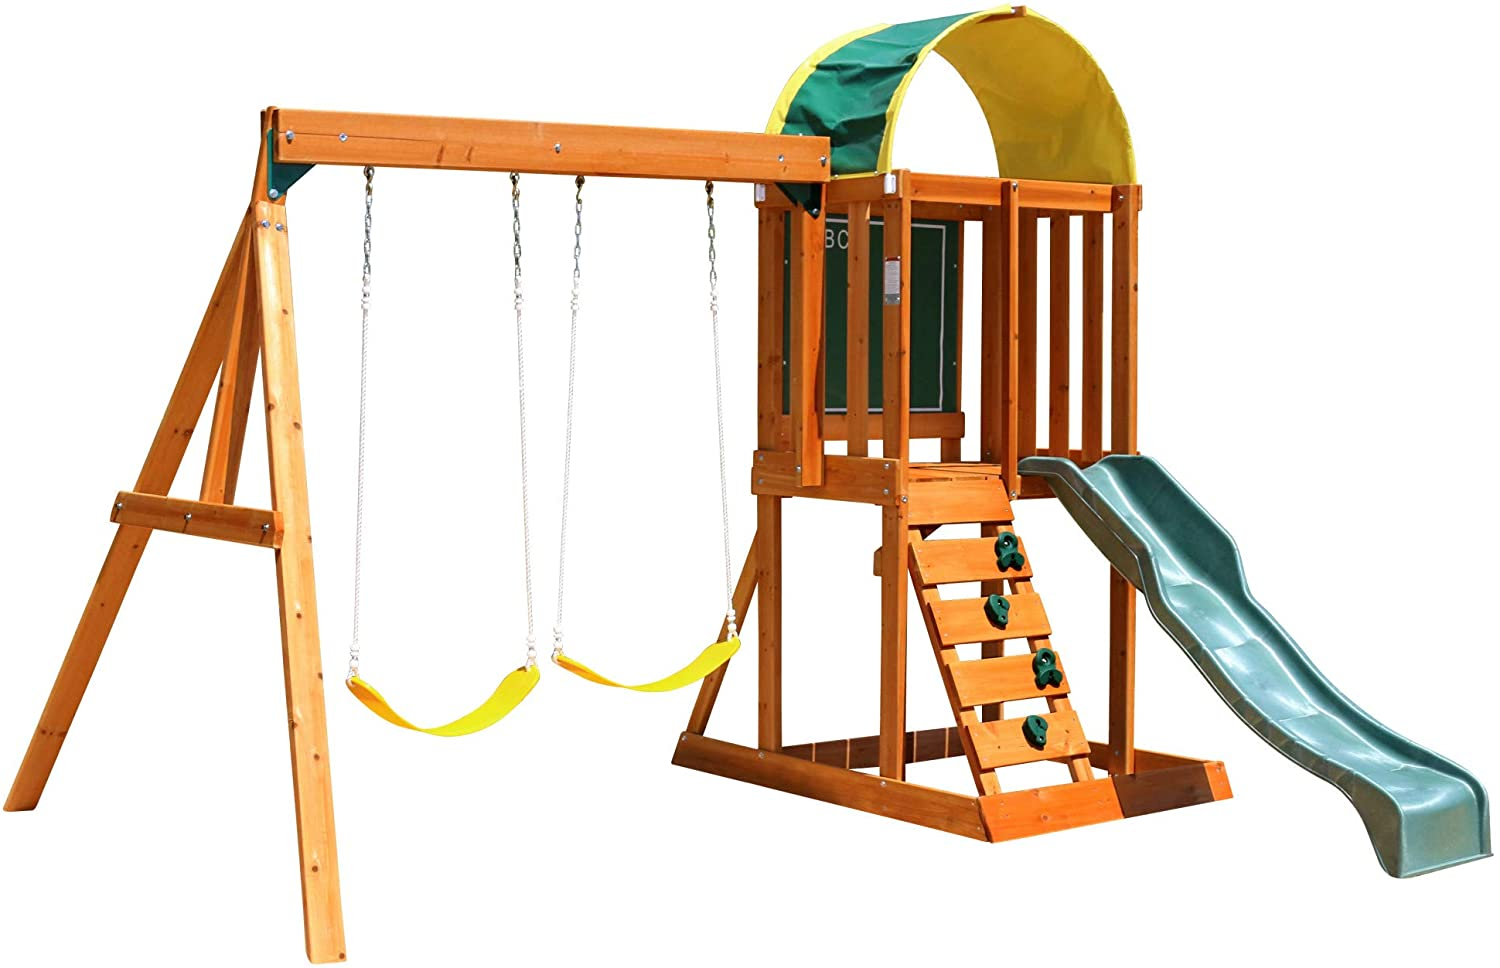 Purchasing the Best Quality Kids Wooden Swing Set